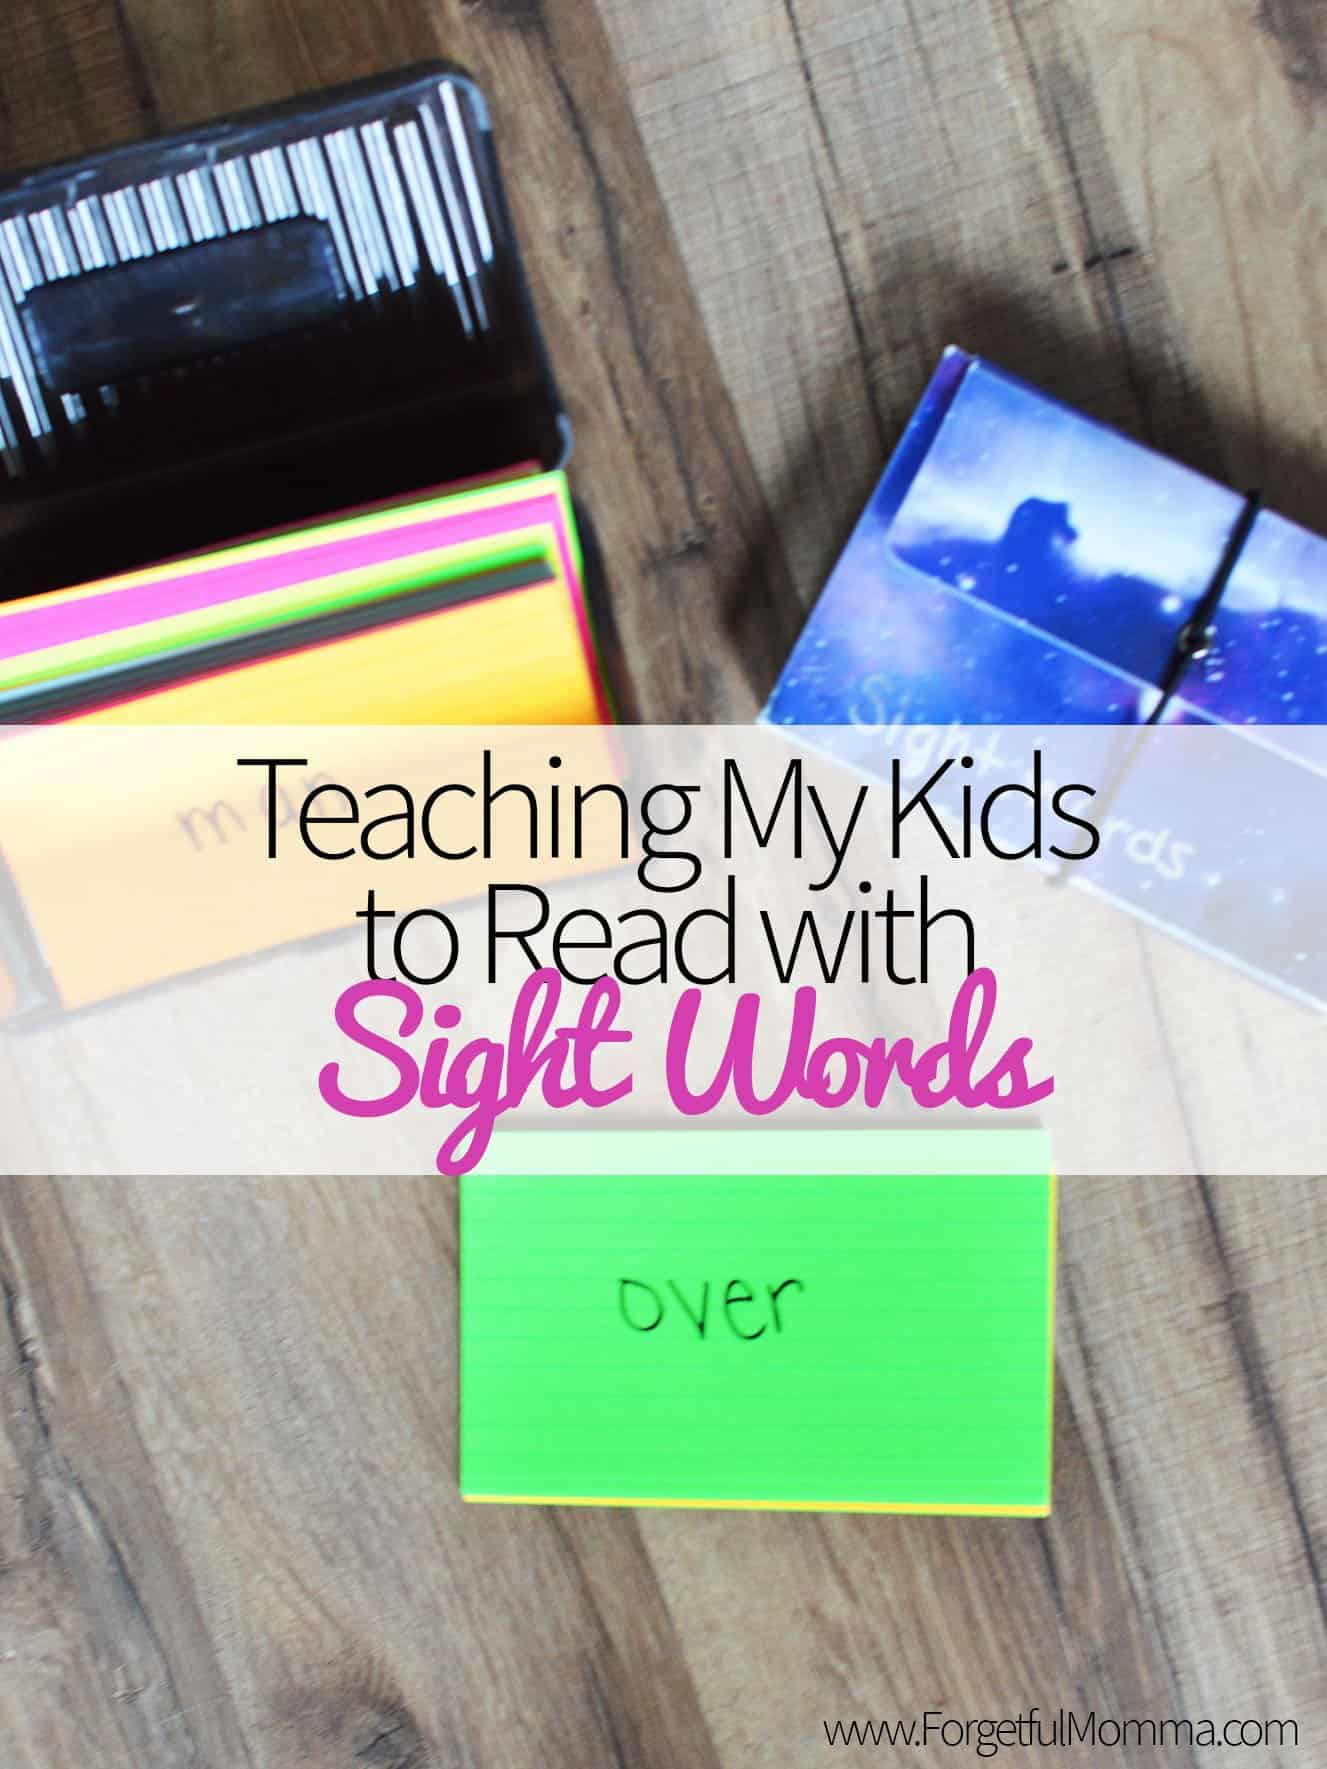 Teaching My Kids to Read with Sight Words